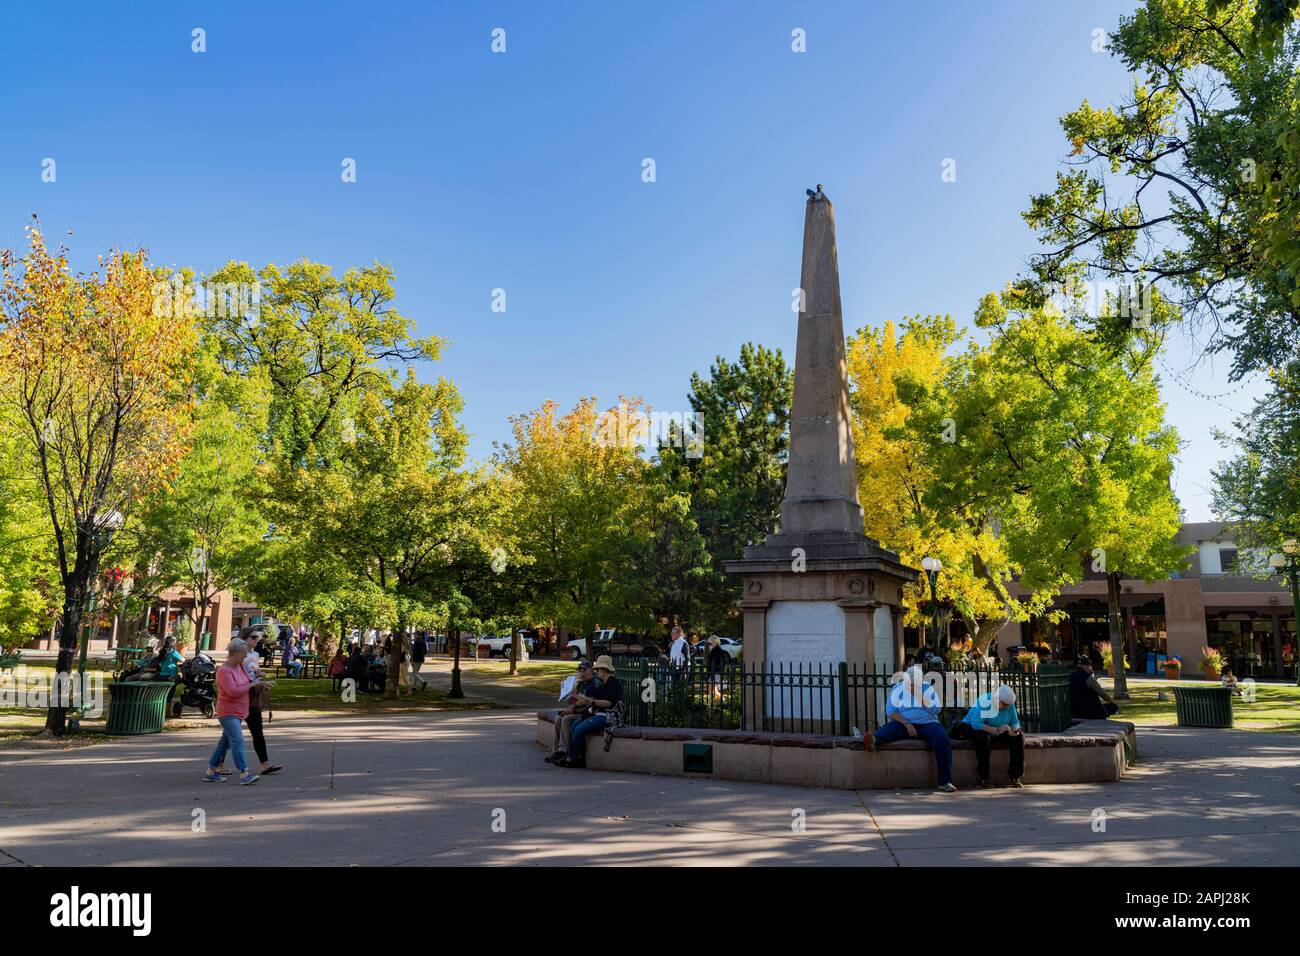 Santa Fe Plaza High Resolution Stock Photography And Images Alamy